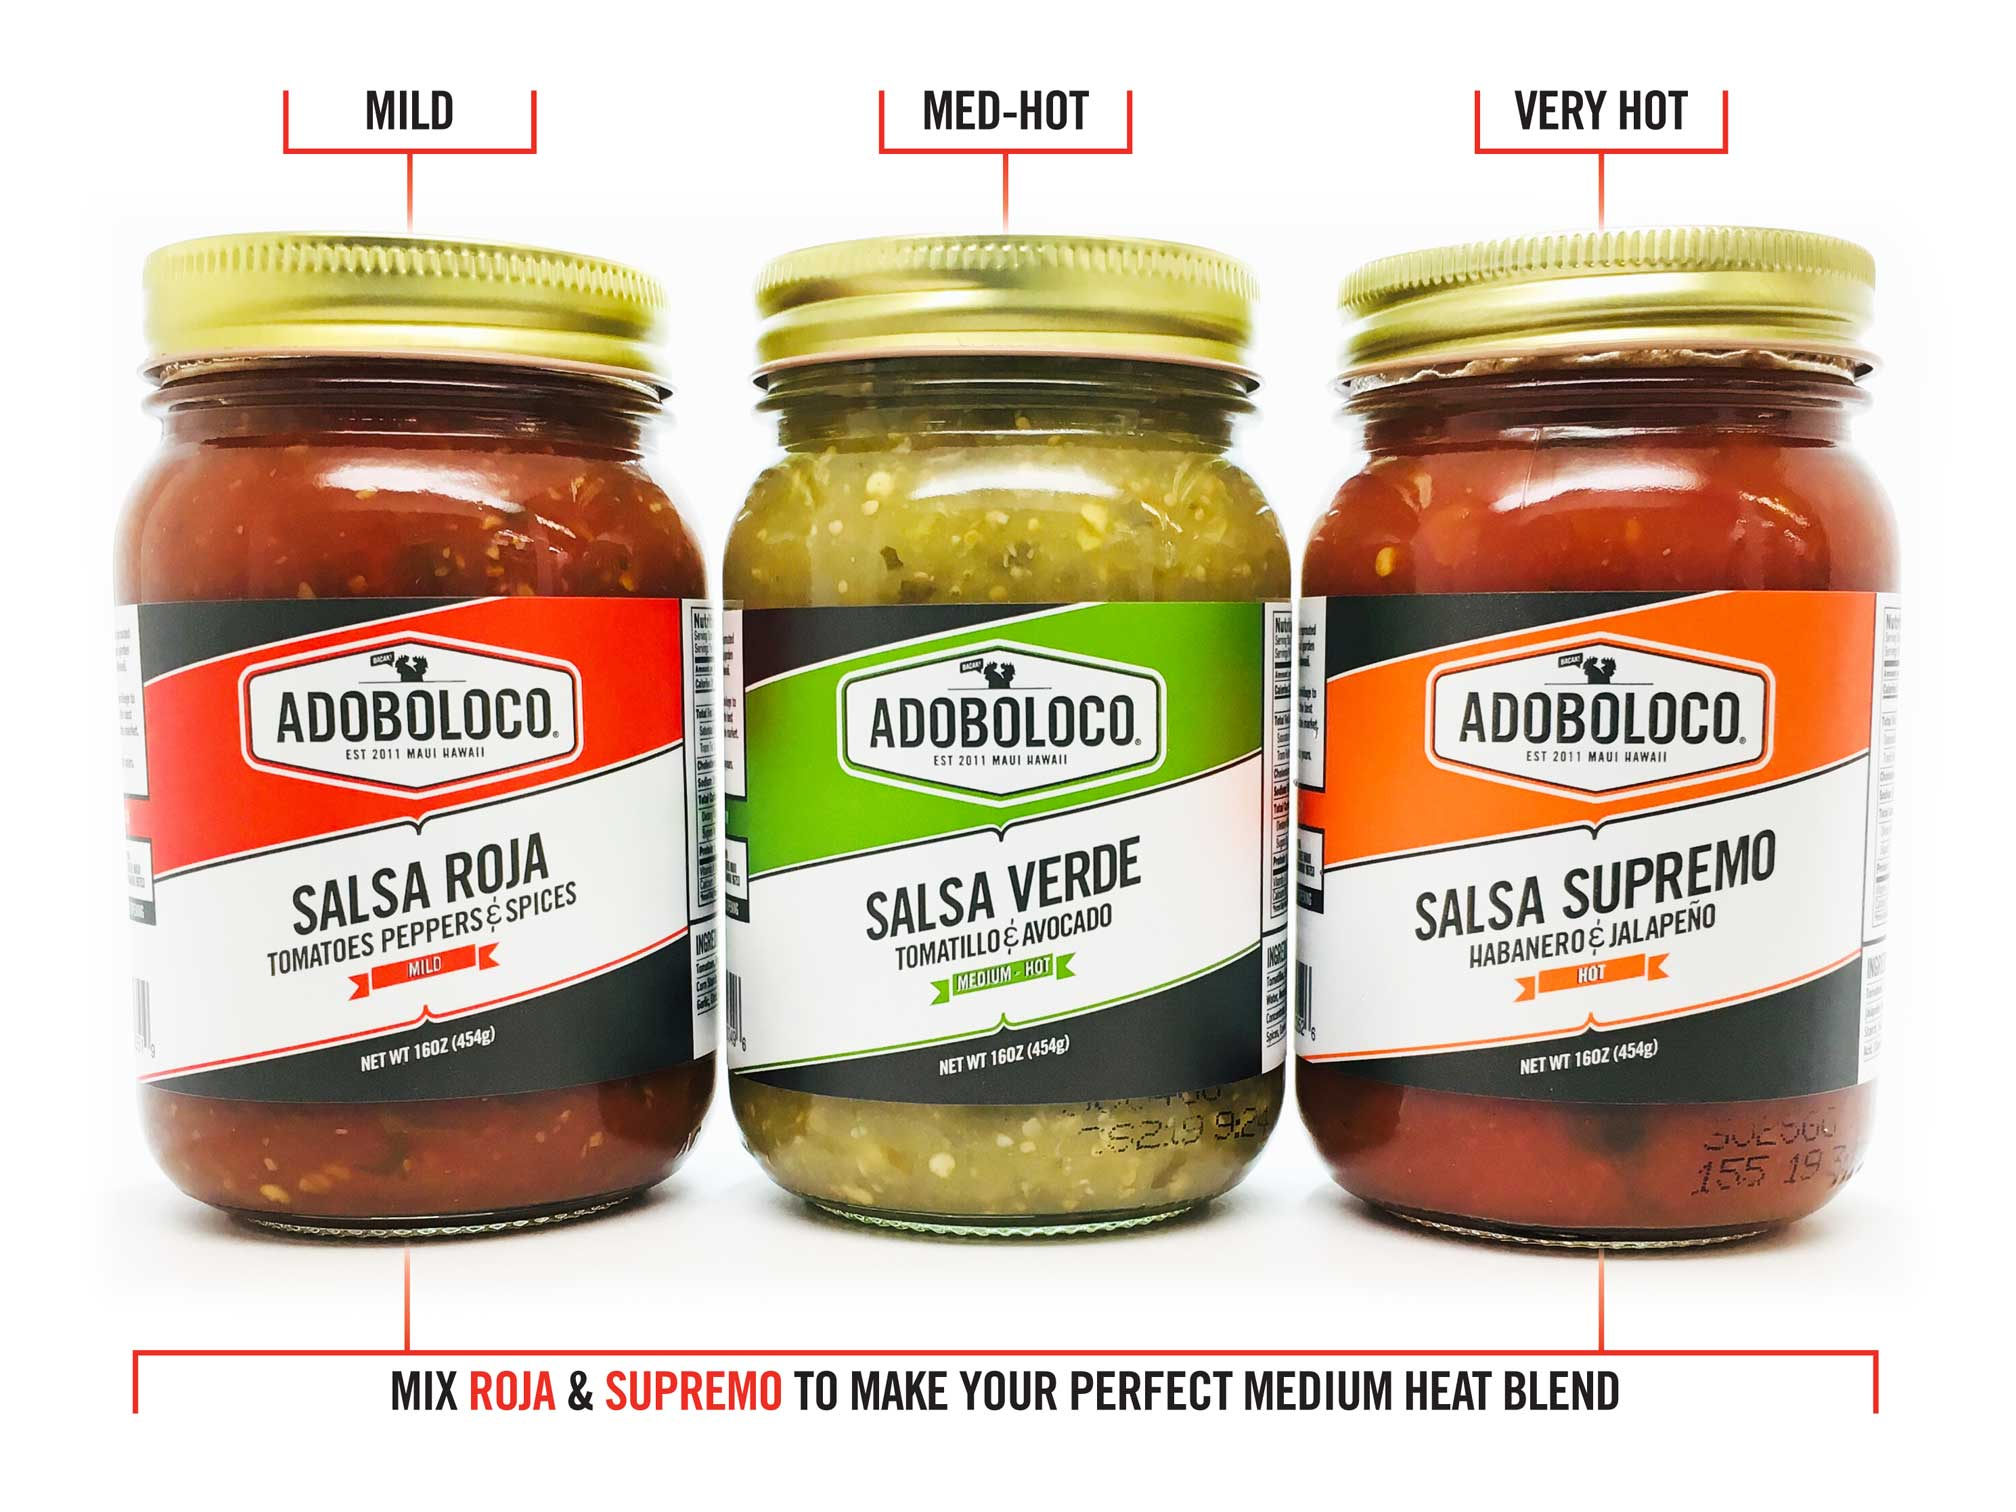 Adoboloco salsa trio with Roja, Verde and Supremo